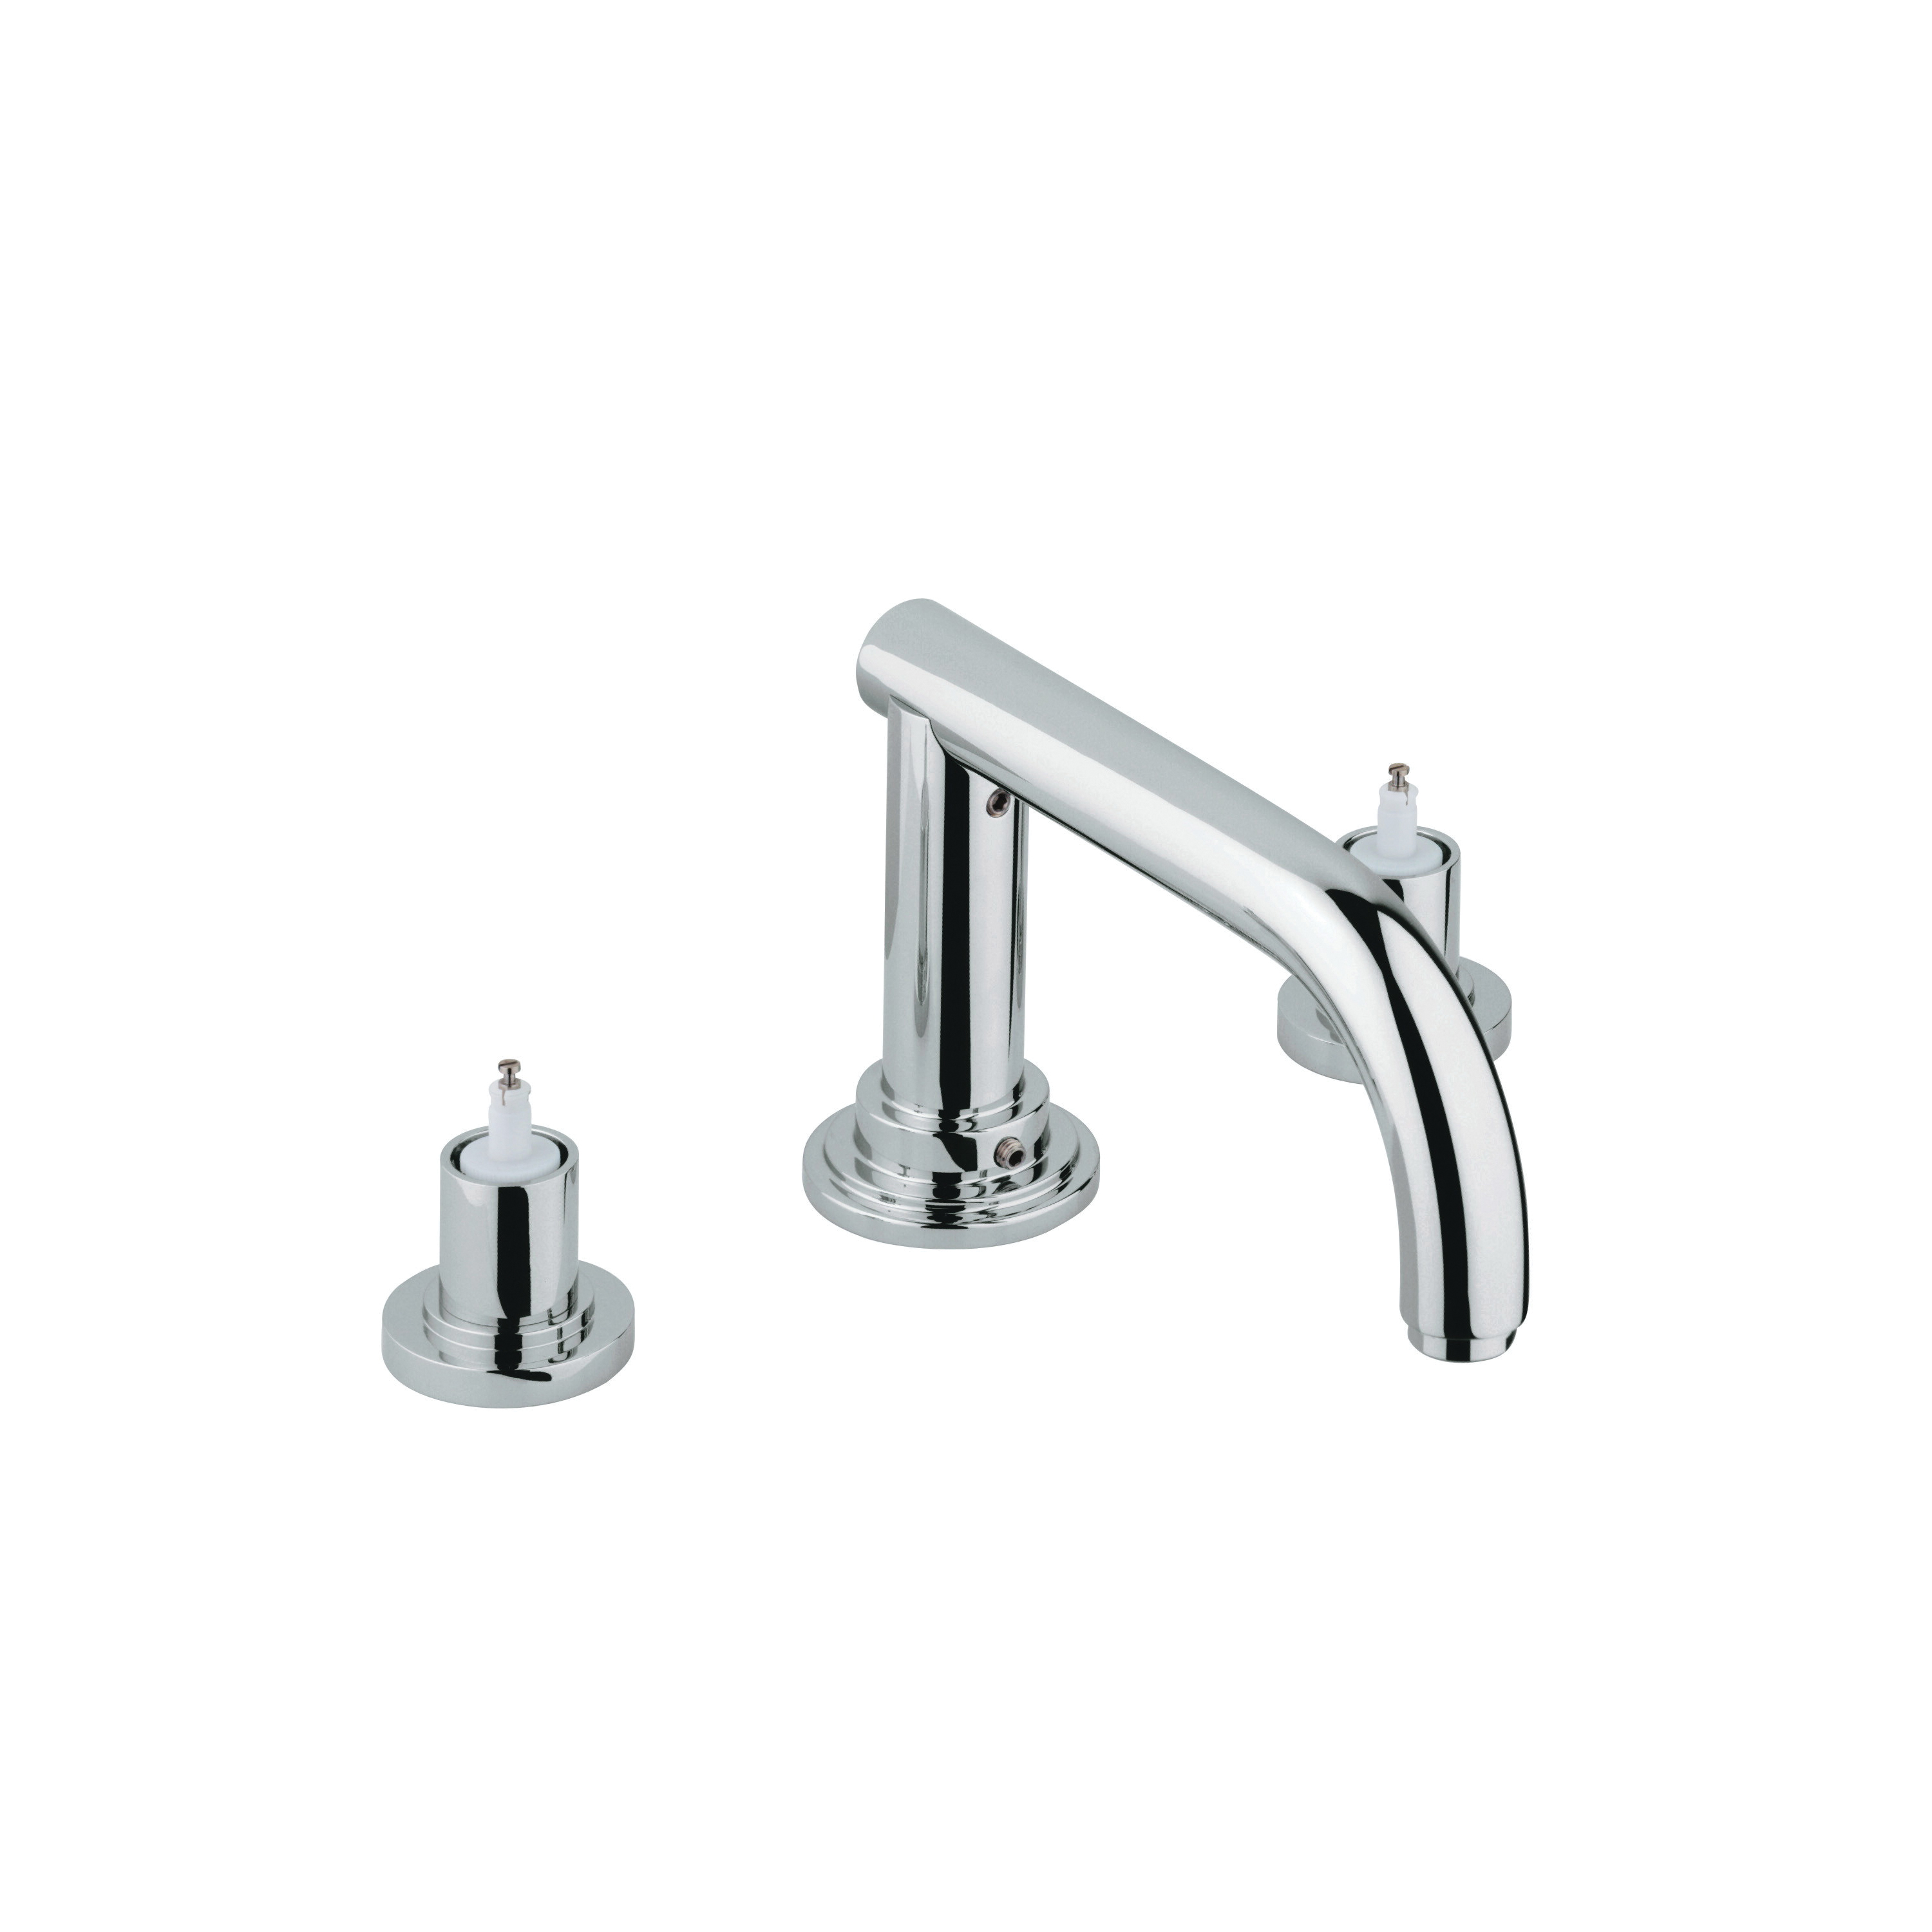 GROHE 25048EN0 Atrio® Roman Tub Filler, 12.6 gpm, StarLight® Brushed Nickel, Hand Shower Yes/No: No, Import